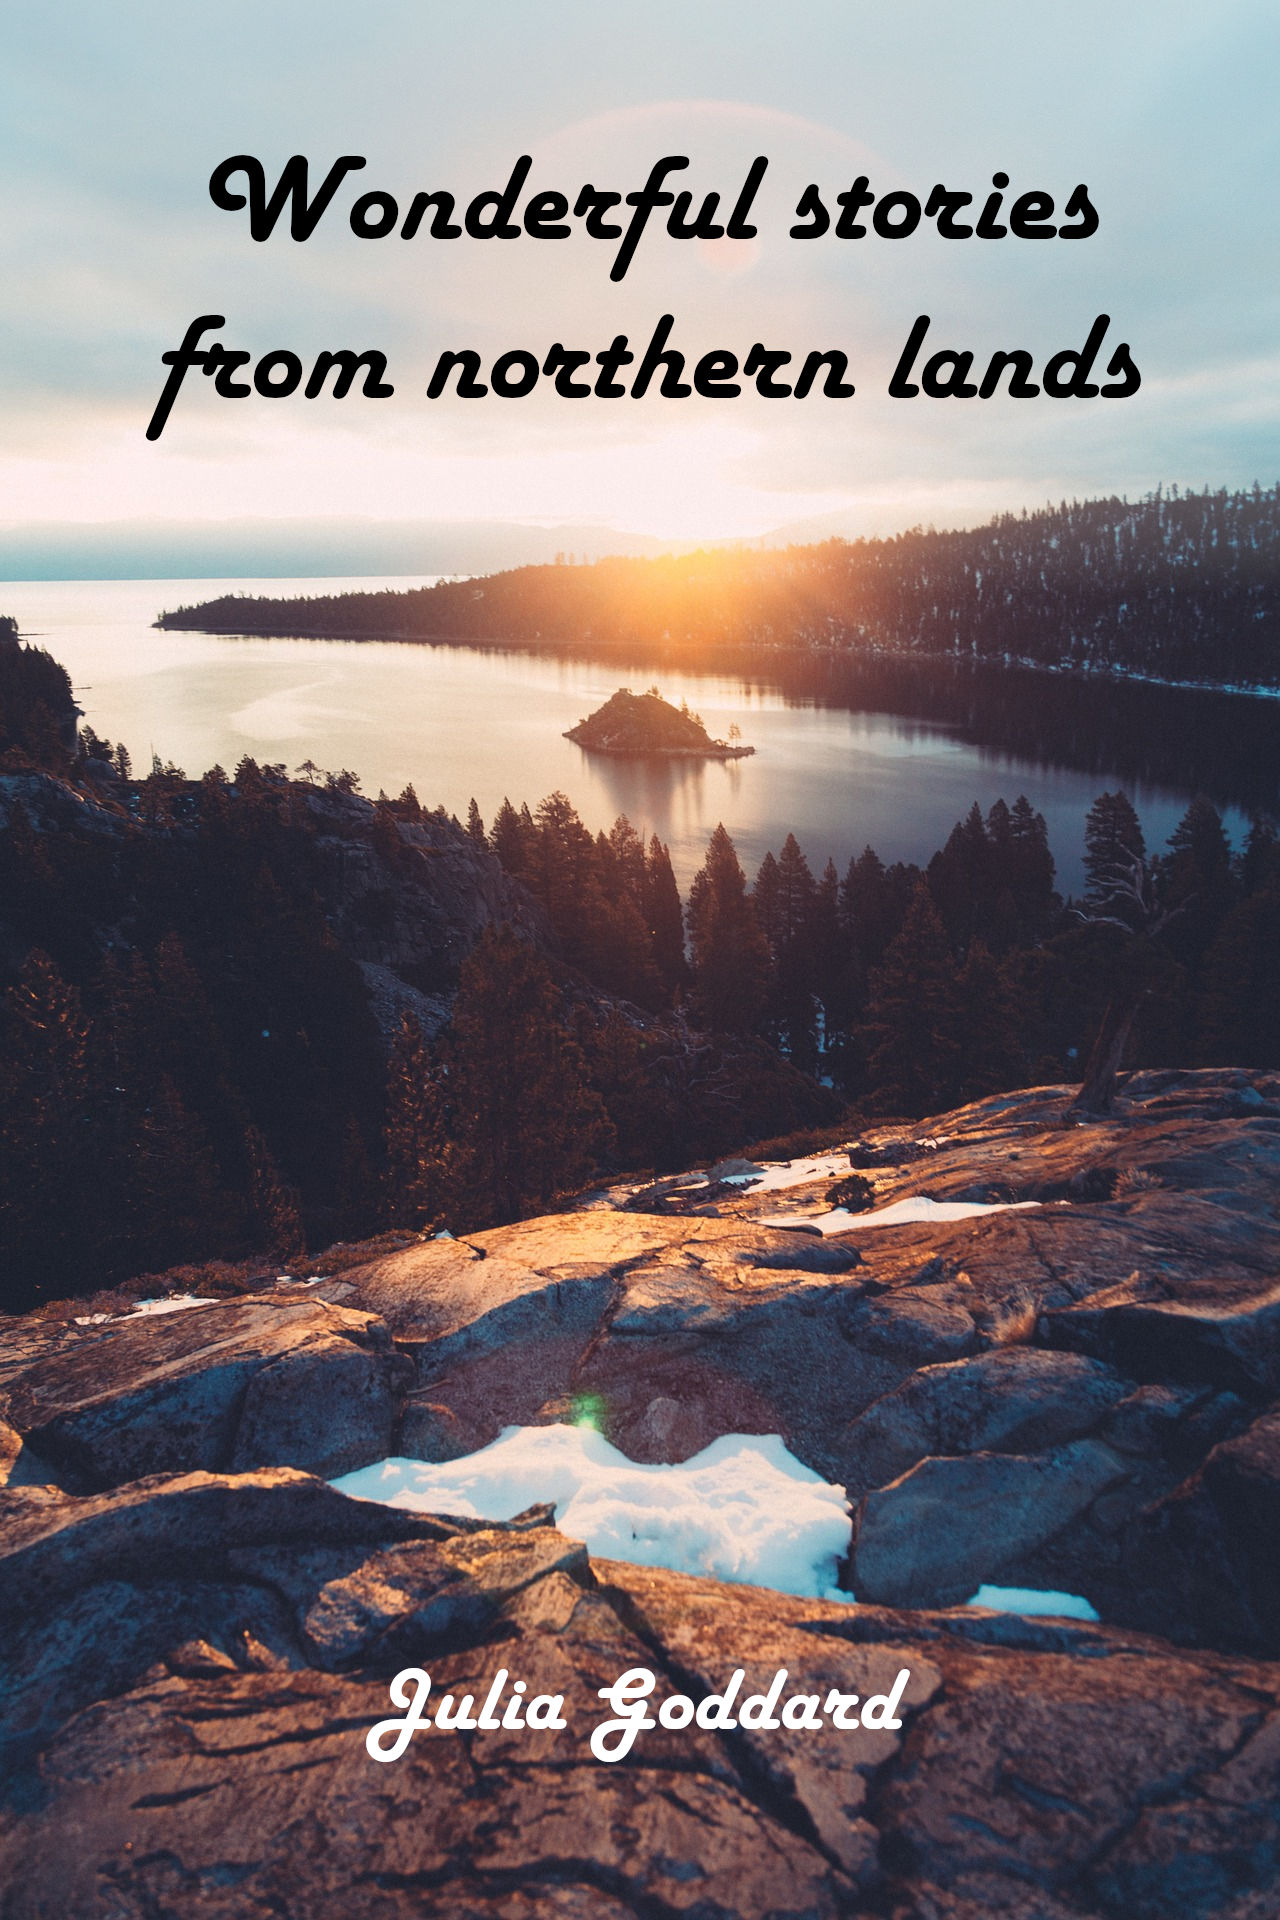 Wonderful stories from northern lands